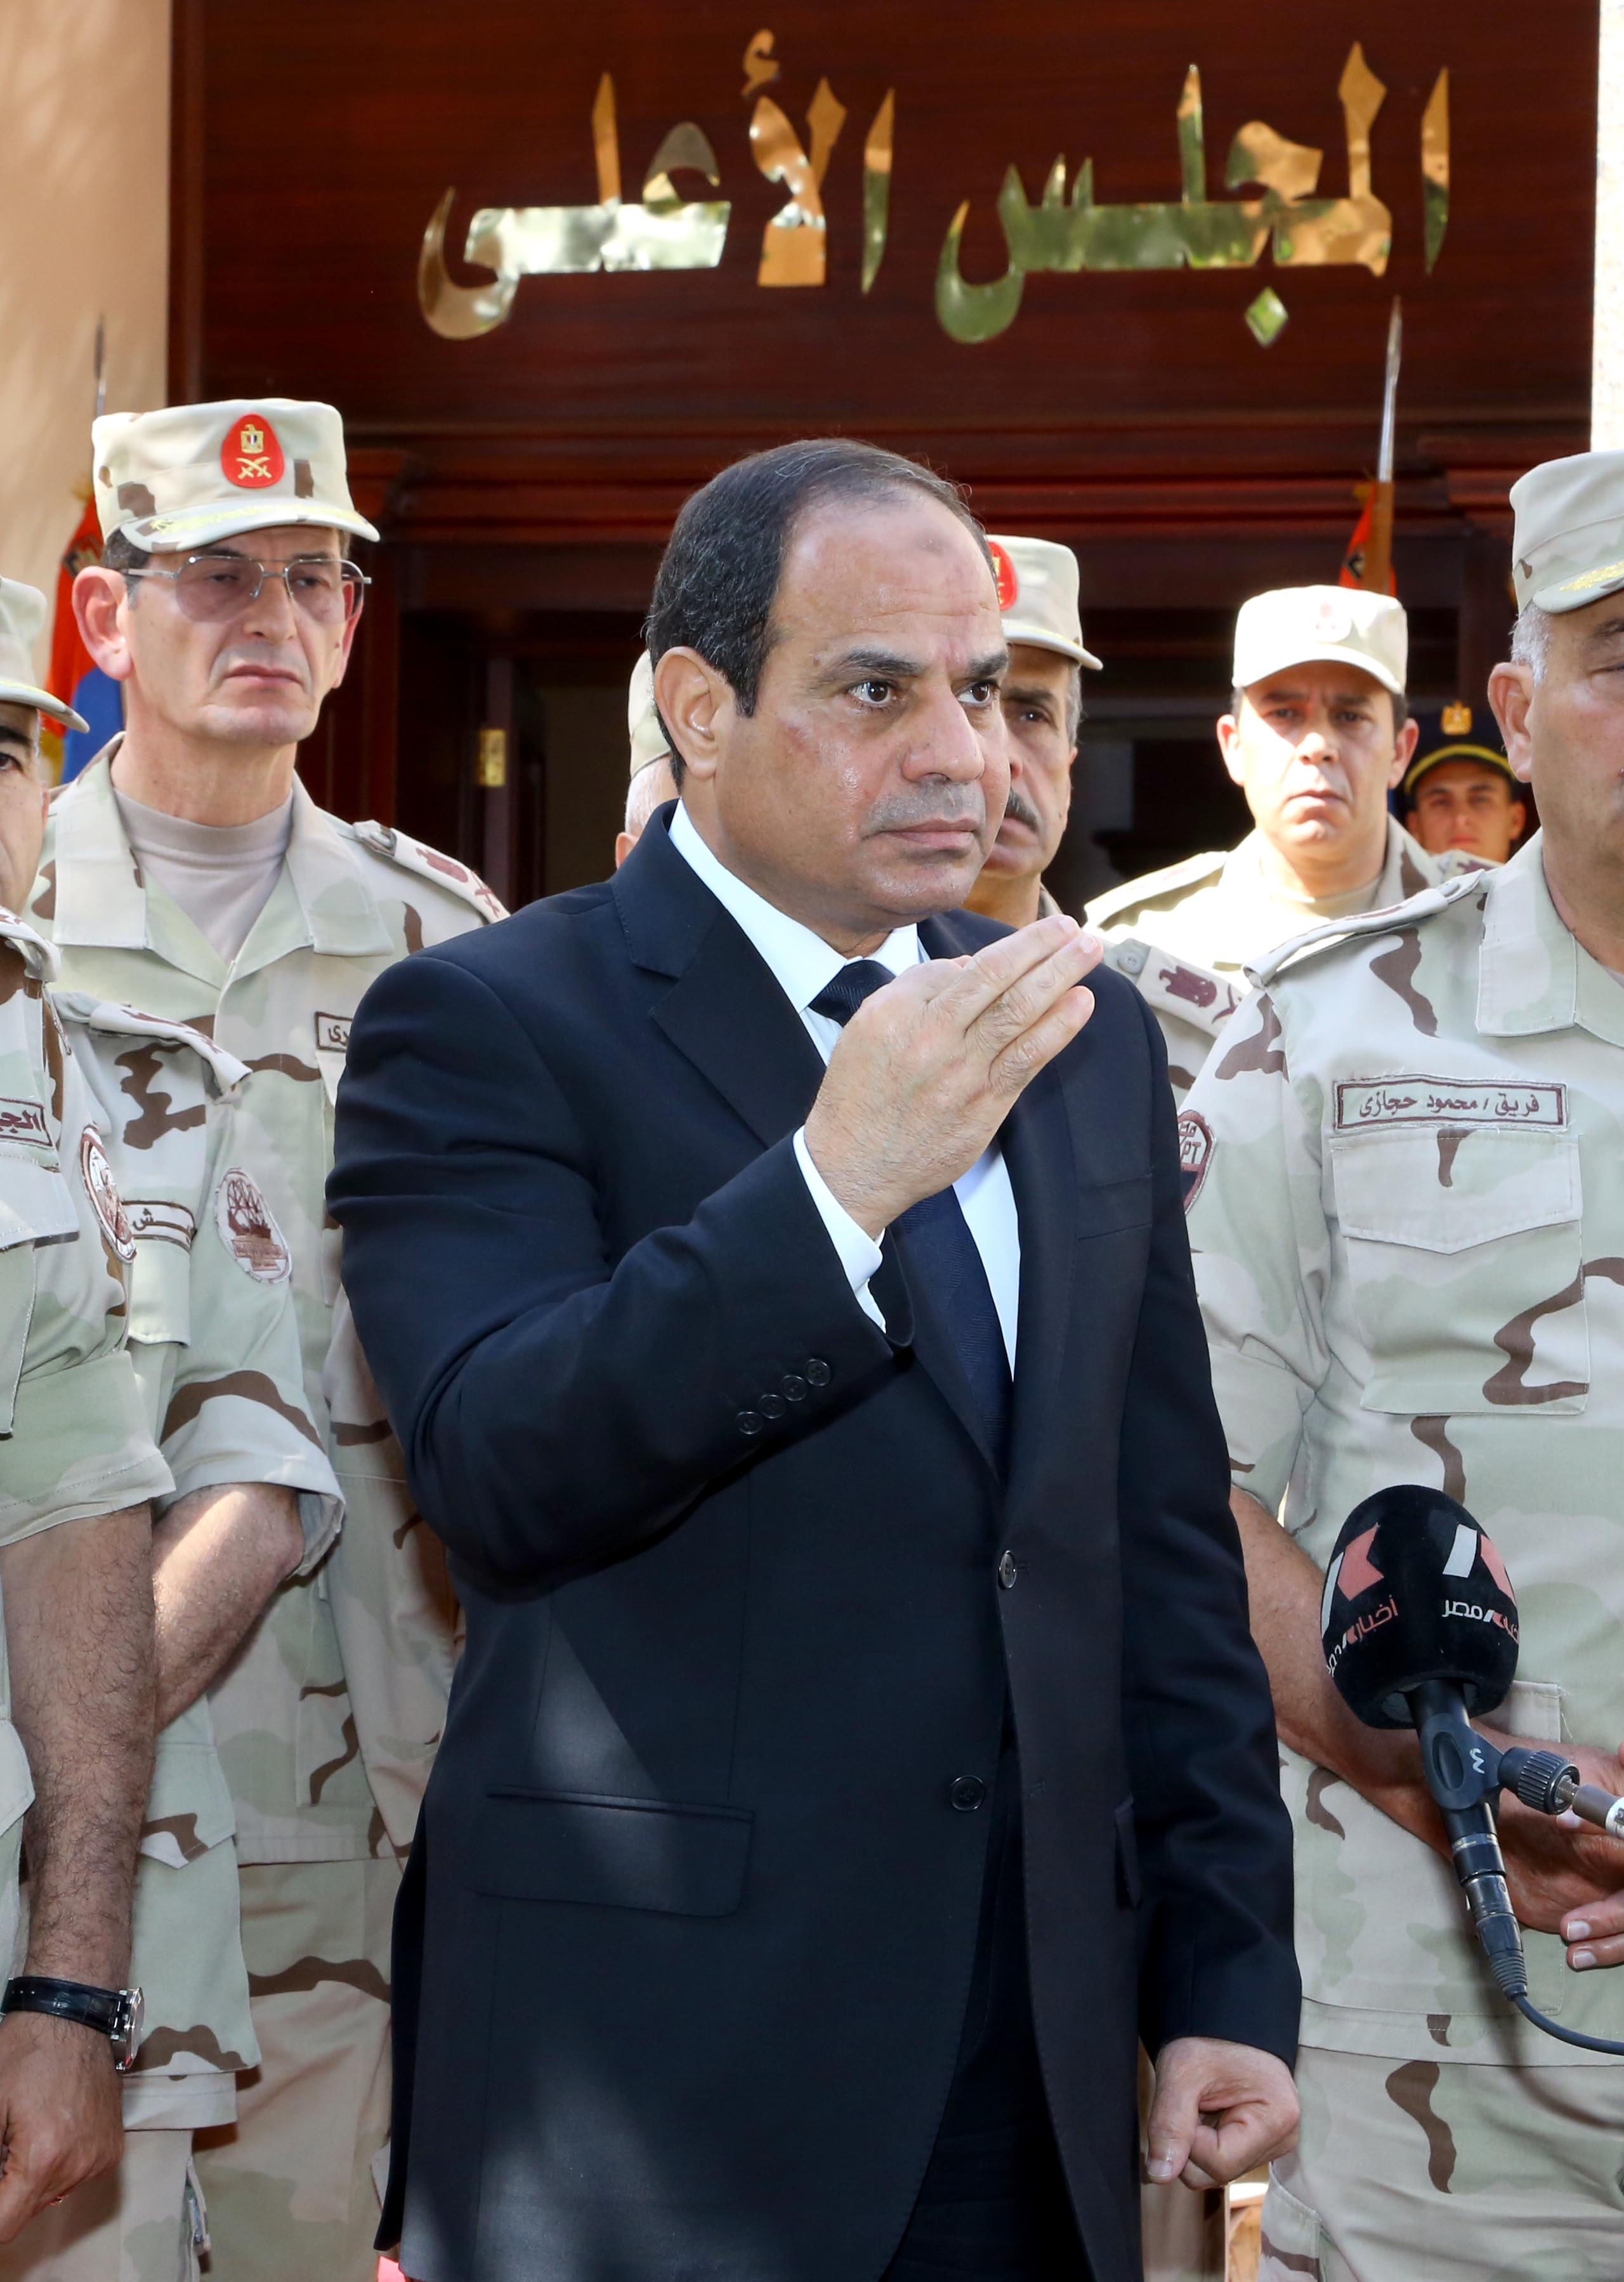 President Abdel Fattah Al-Sisi attending the military funeral of the at least 30 army personnel who were killed last Friday in Sinai violence. (Photo Armed Force Handout)